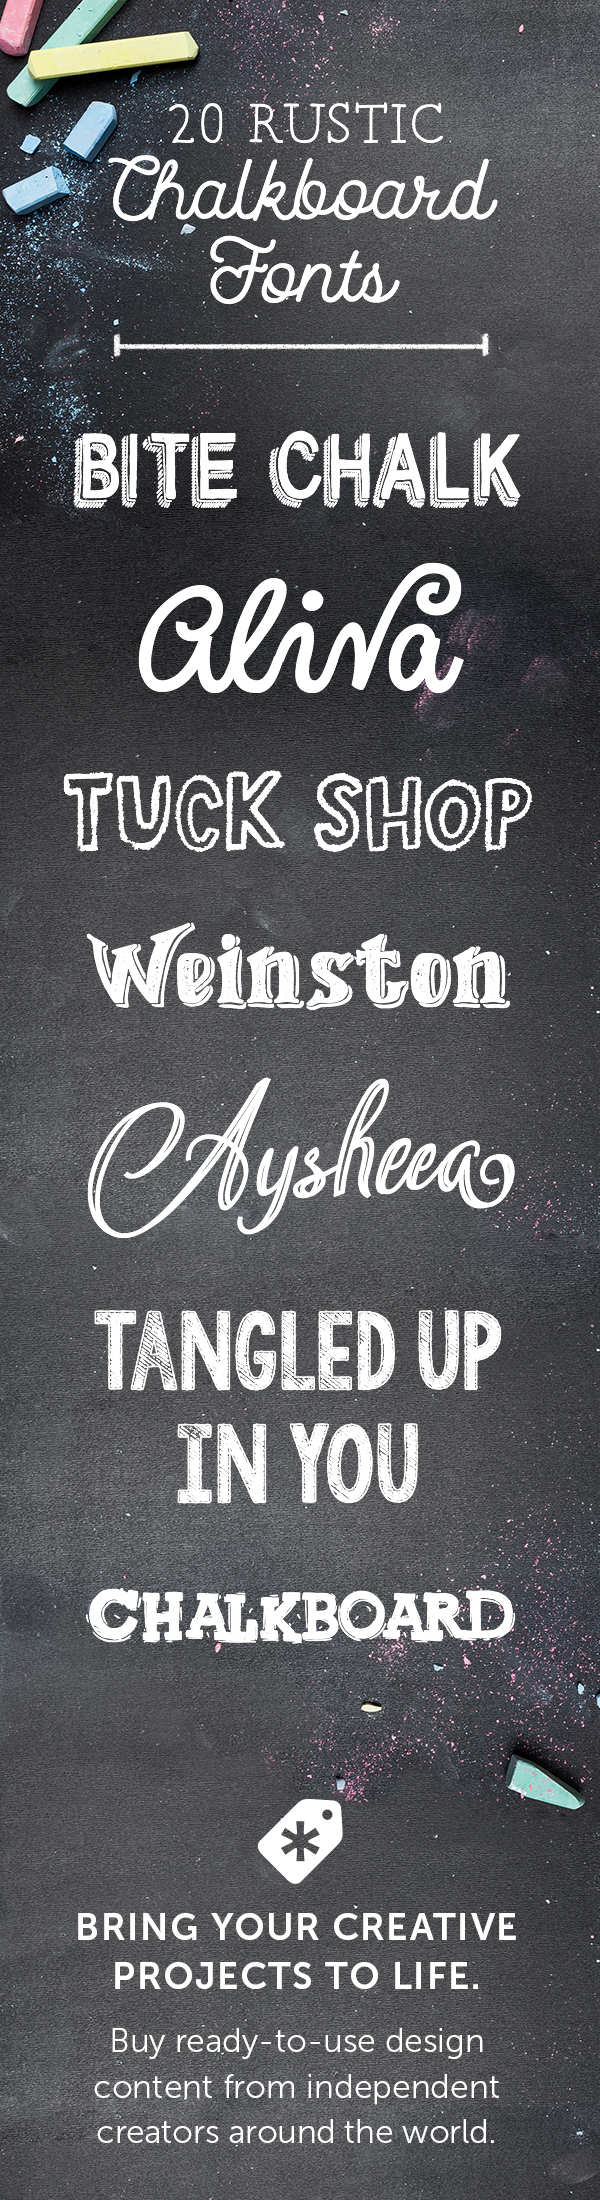 20 Rustic Chalkboard Fonts To Add Your Collection Creative